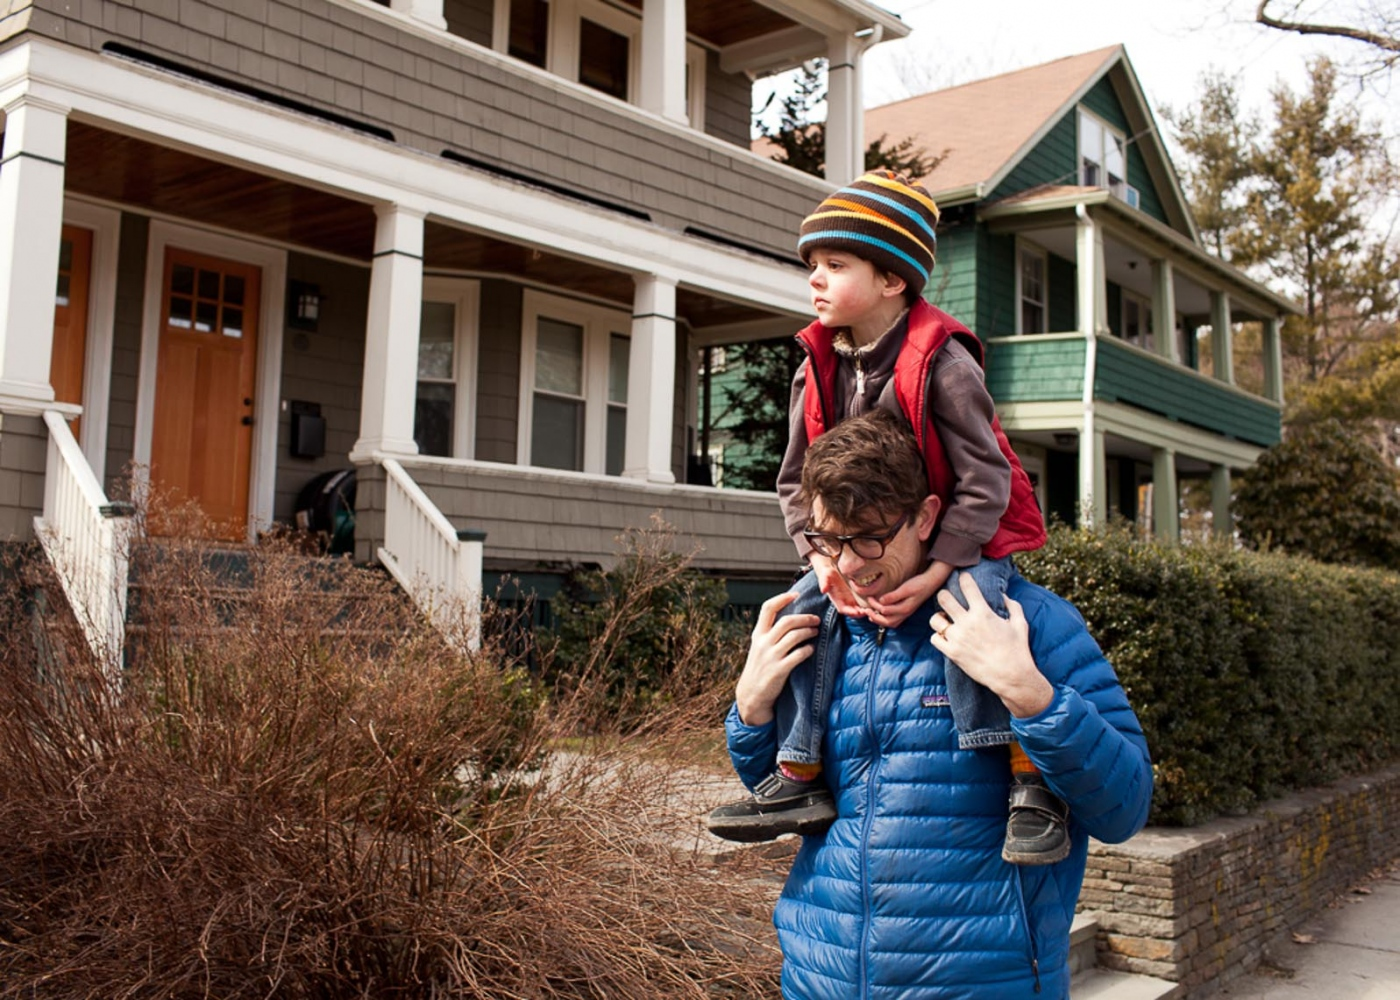 Jeff Howe carries his 5 year old son Finn home from the park. Finn is severely autistic and the cost of his care has forced Howe and his family to make tough choices.  For Money Magazine